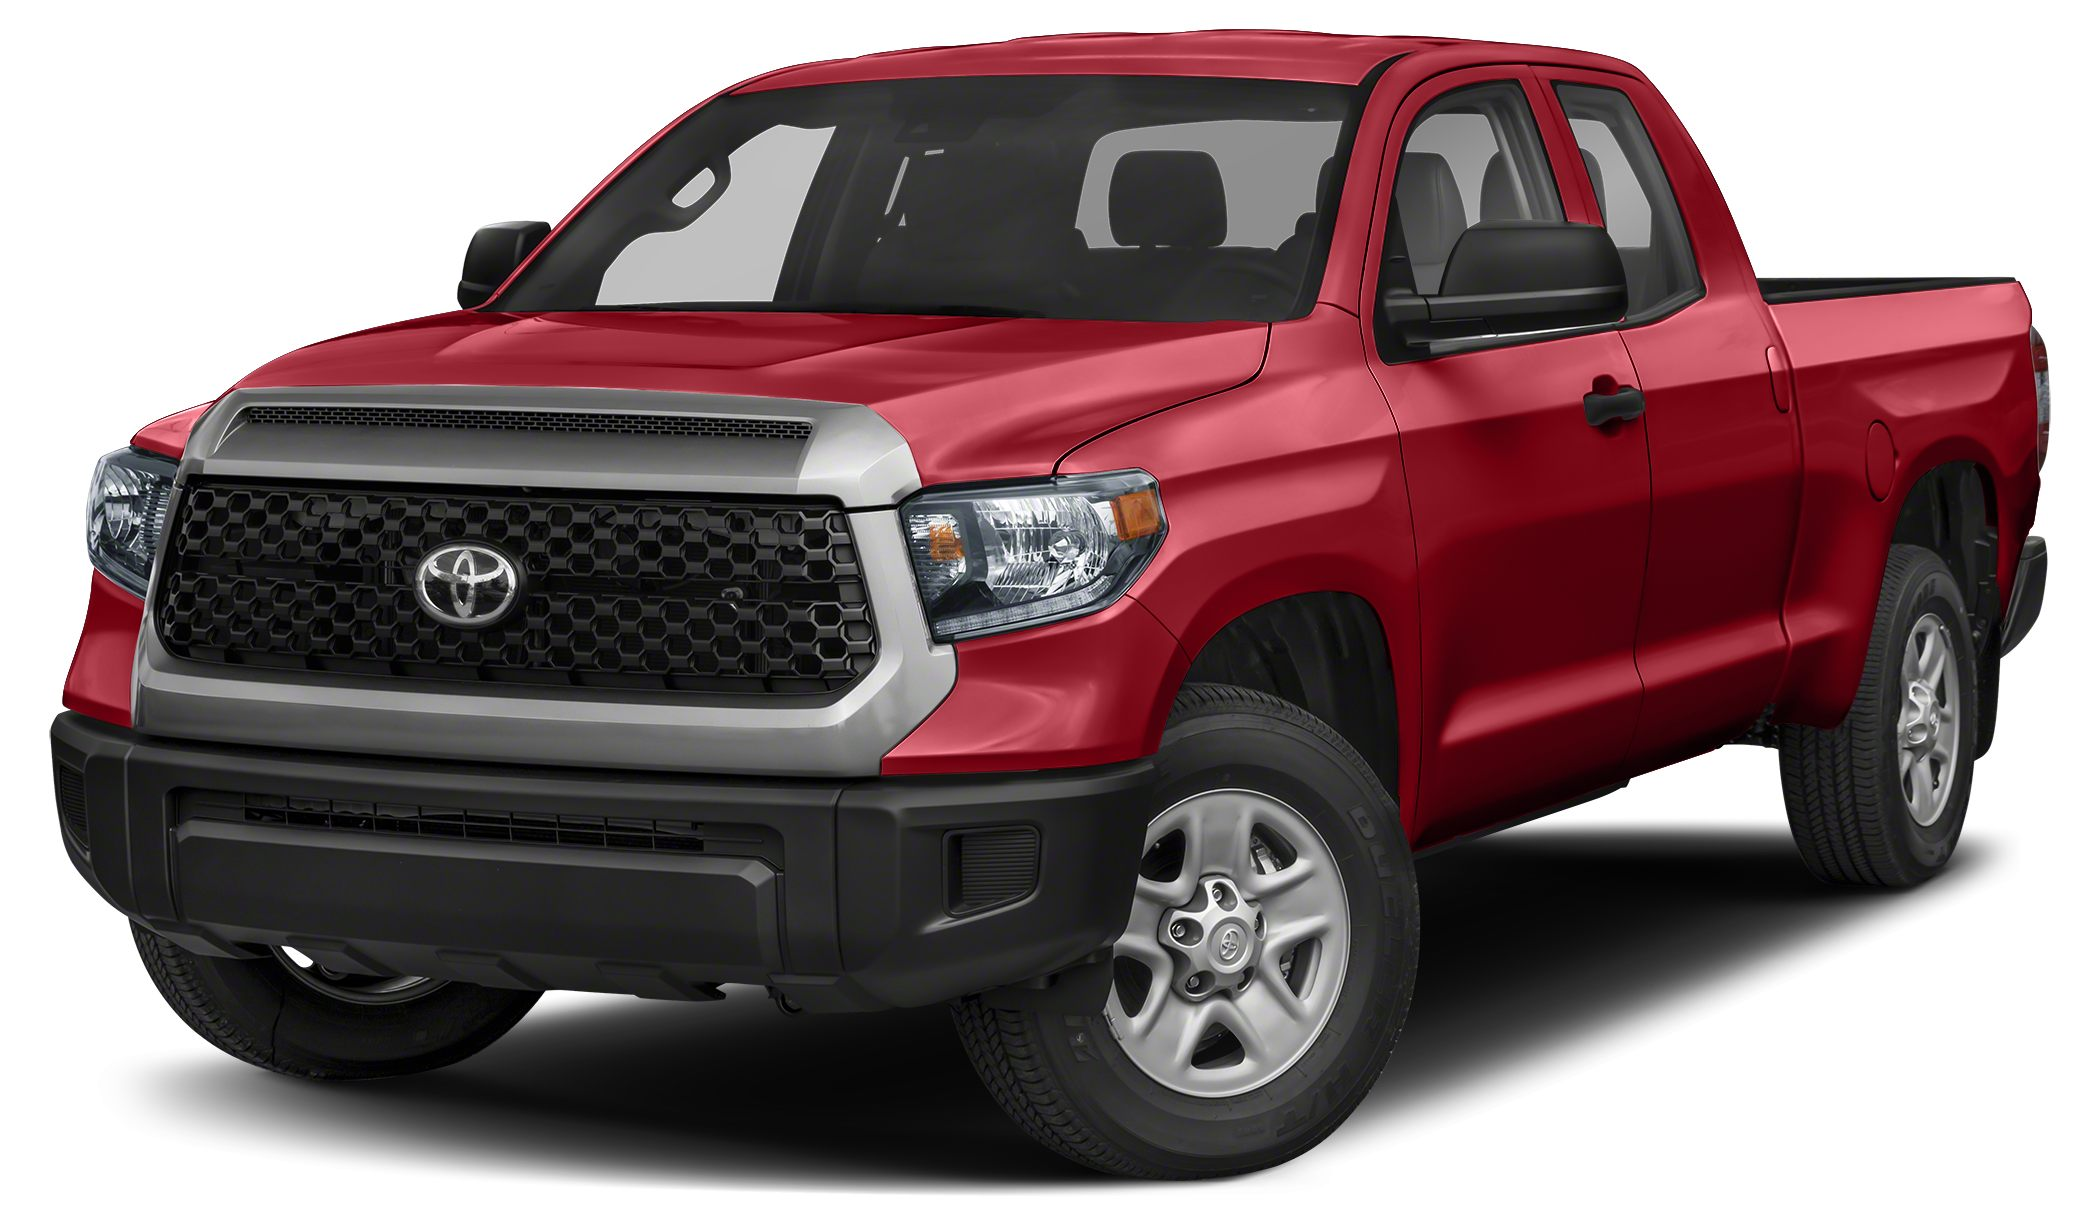 2018 Toyota Tundra SR5 Miles 11Color Barcelona Red Metallic Stock TT5207 VIN 5TFRY5F15JX2399